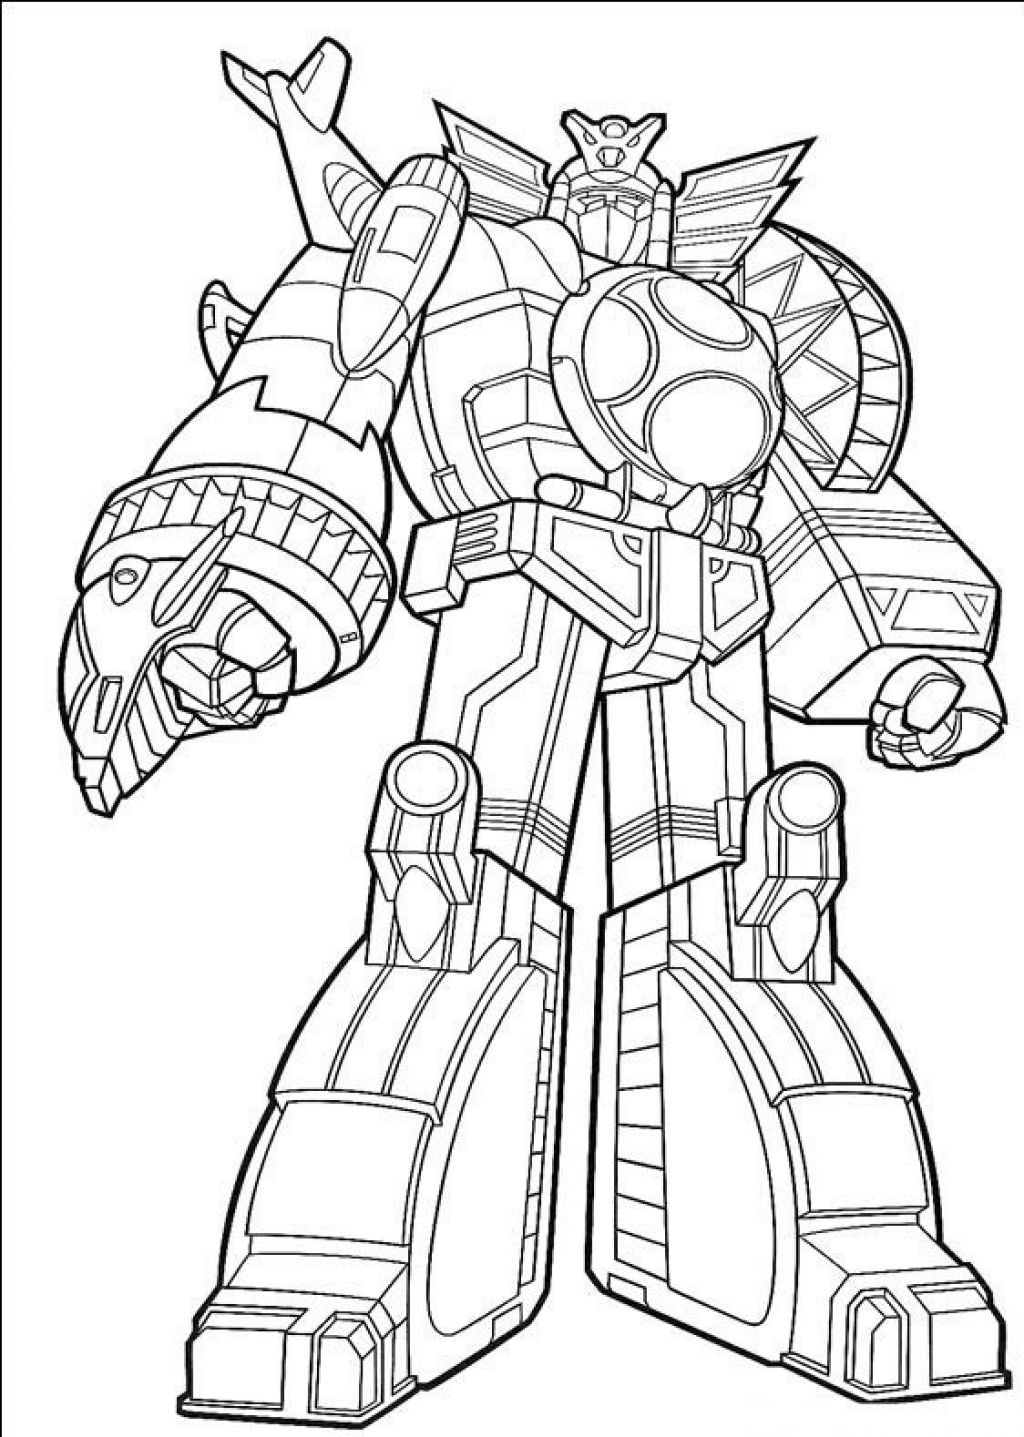 power ranger coloring pages free free easy to print power rangers coloring pages tulamama power free ranger pages coloring